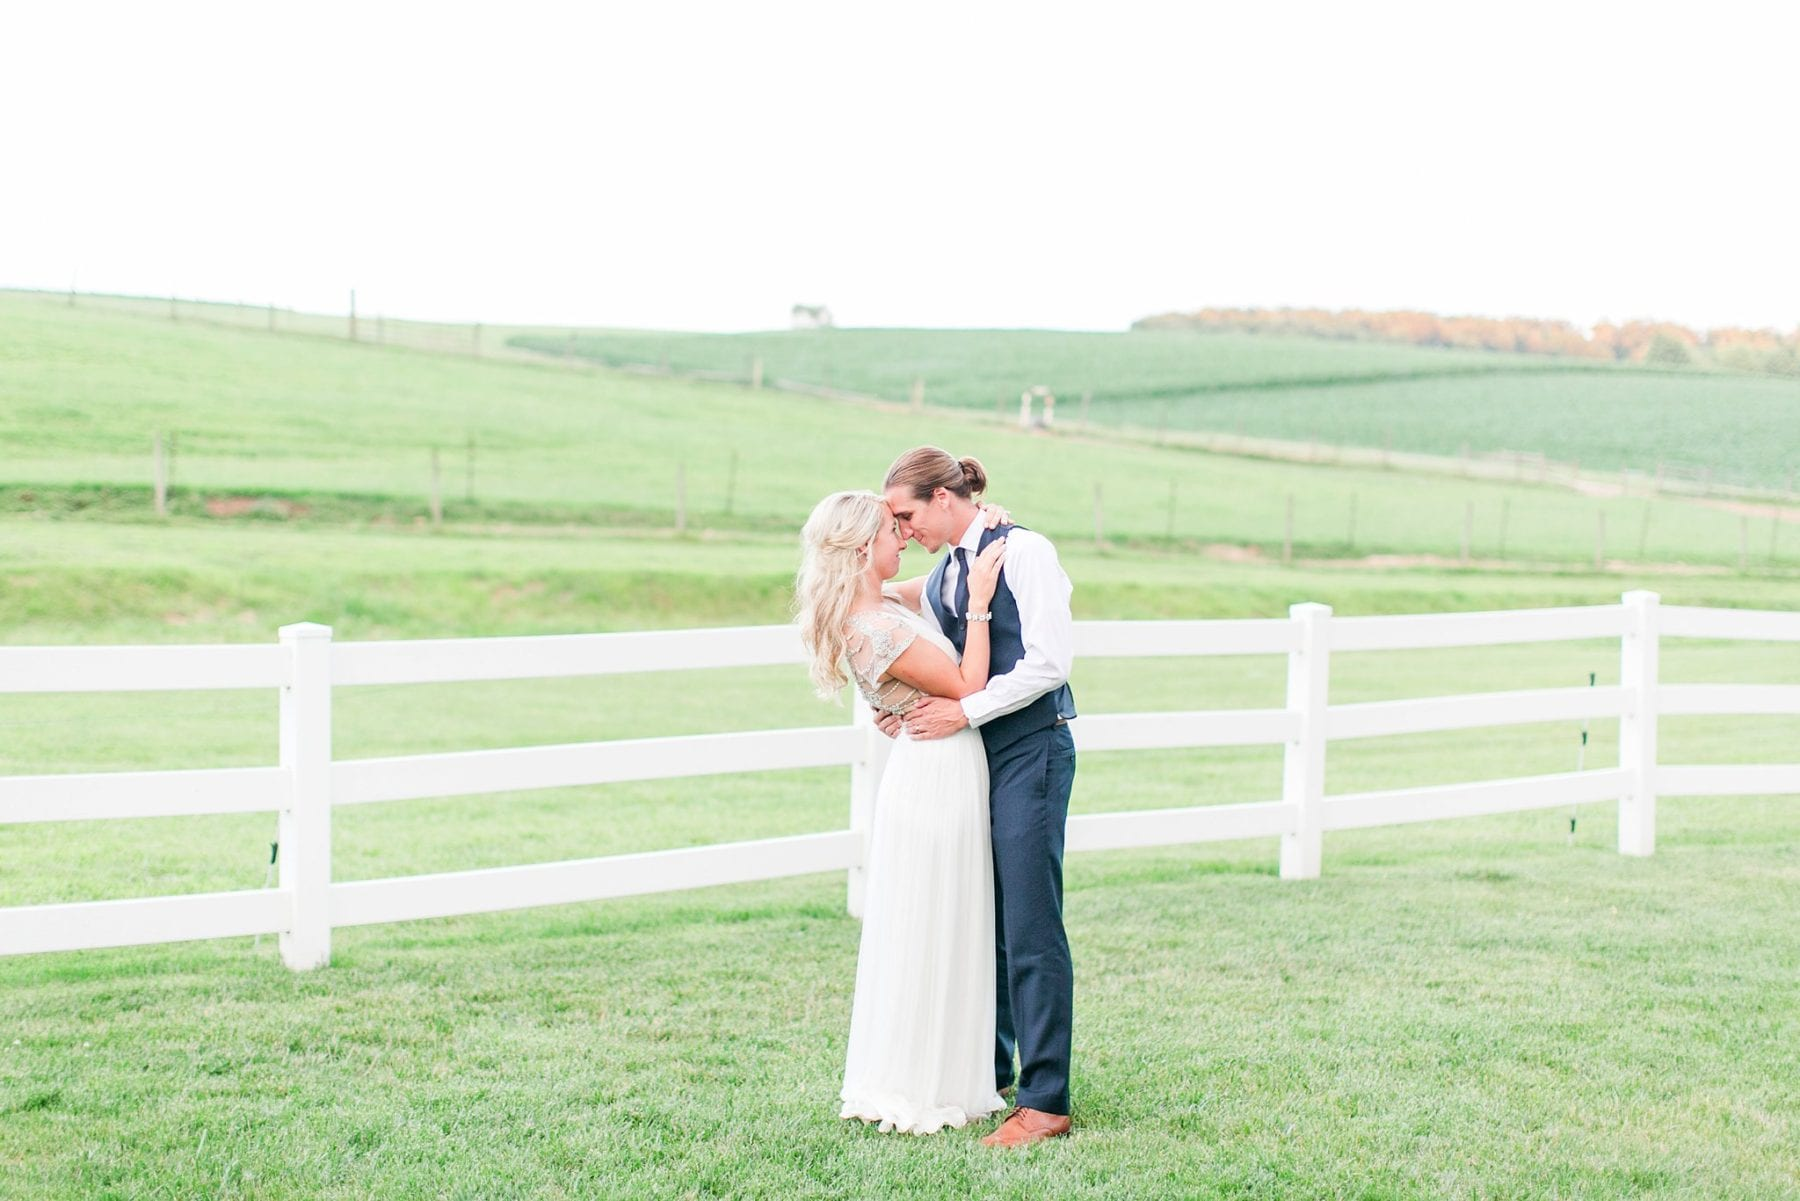 Pond View Farm Wedding Photos Maryland Wedding Photographer Kristen & Ryan Megan Kelsey Photography Blog-265.jpg